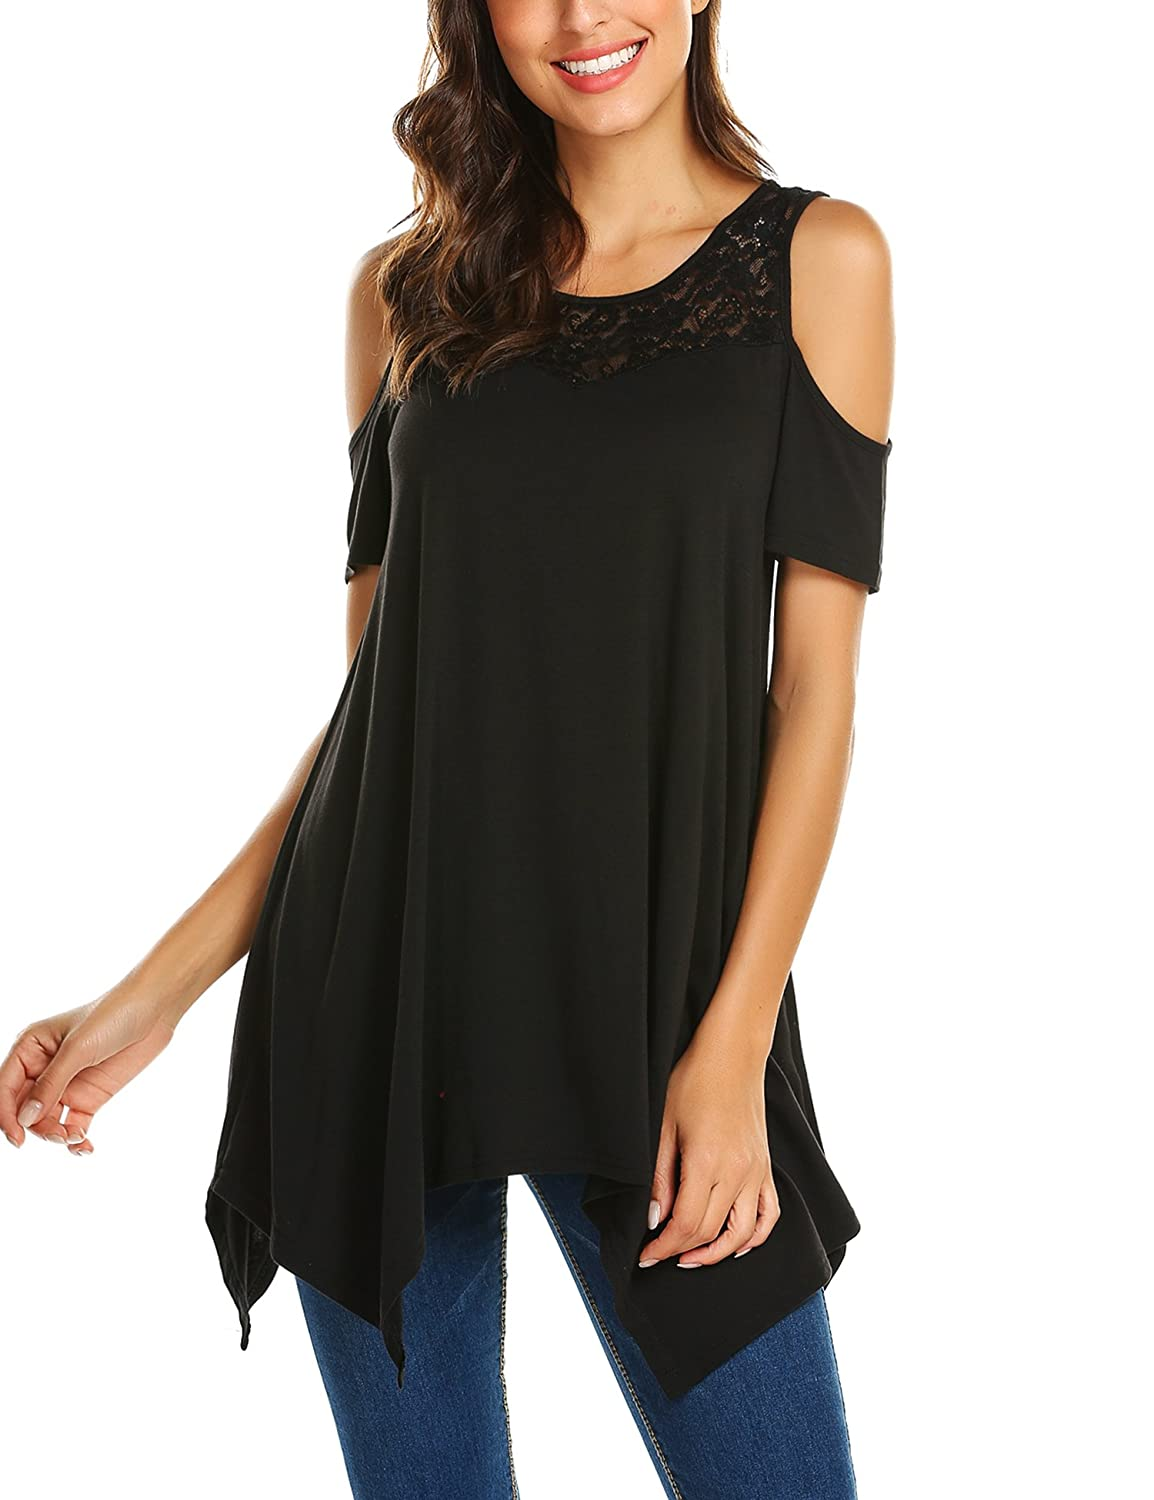 b5ec97887c376 BURLADY Women s Lace Cold Shoulder Tops Short Sleeve Flowy Loose Tunic  Shirts at Amazon Women s Clothing store